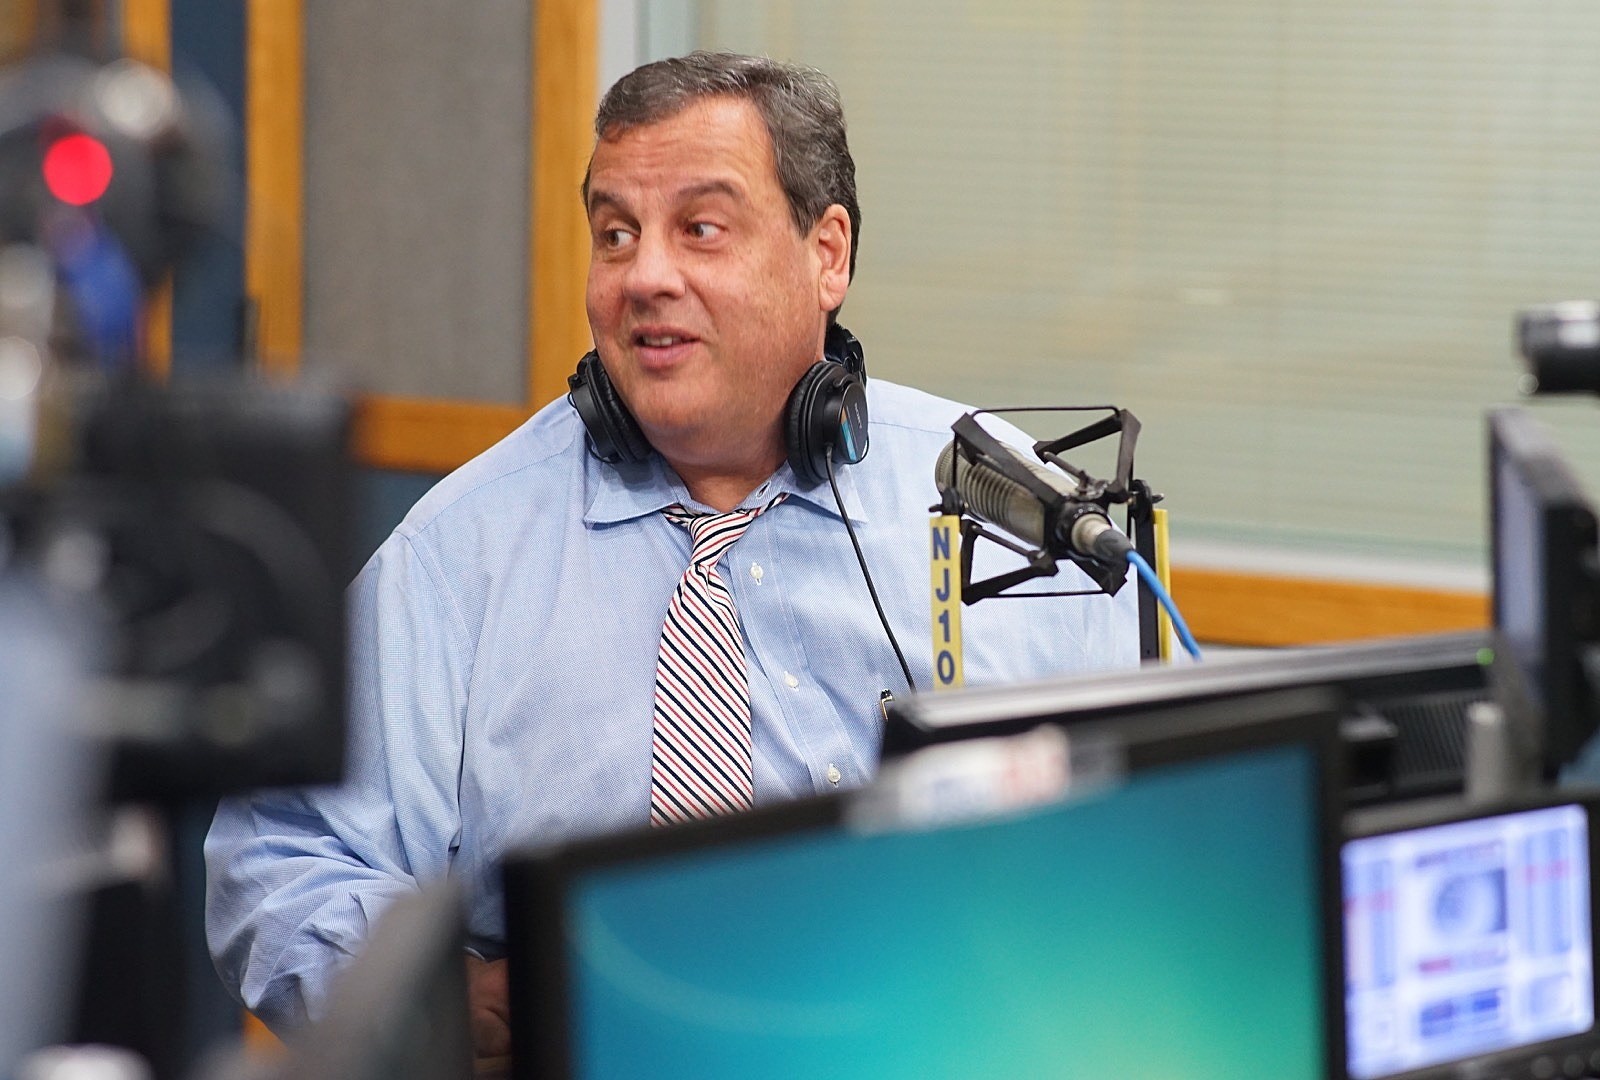 Ex-ally: Christie seemed happy about gridlock